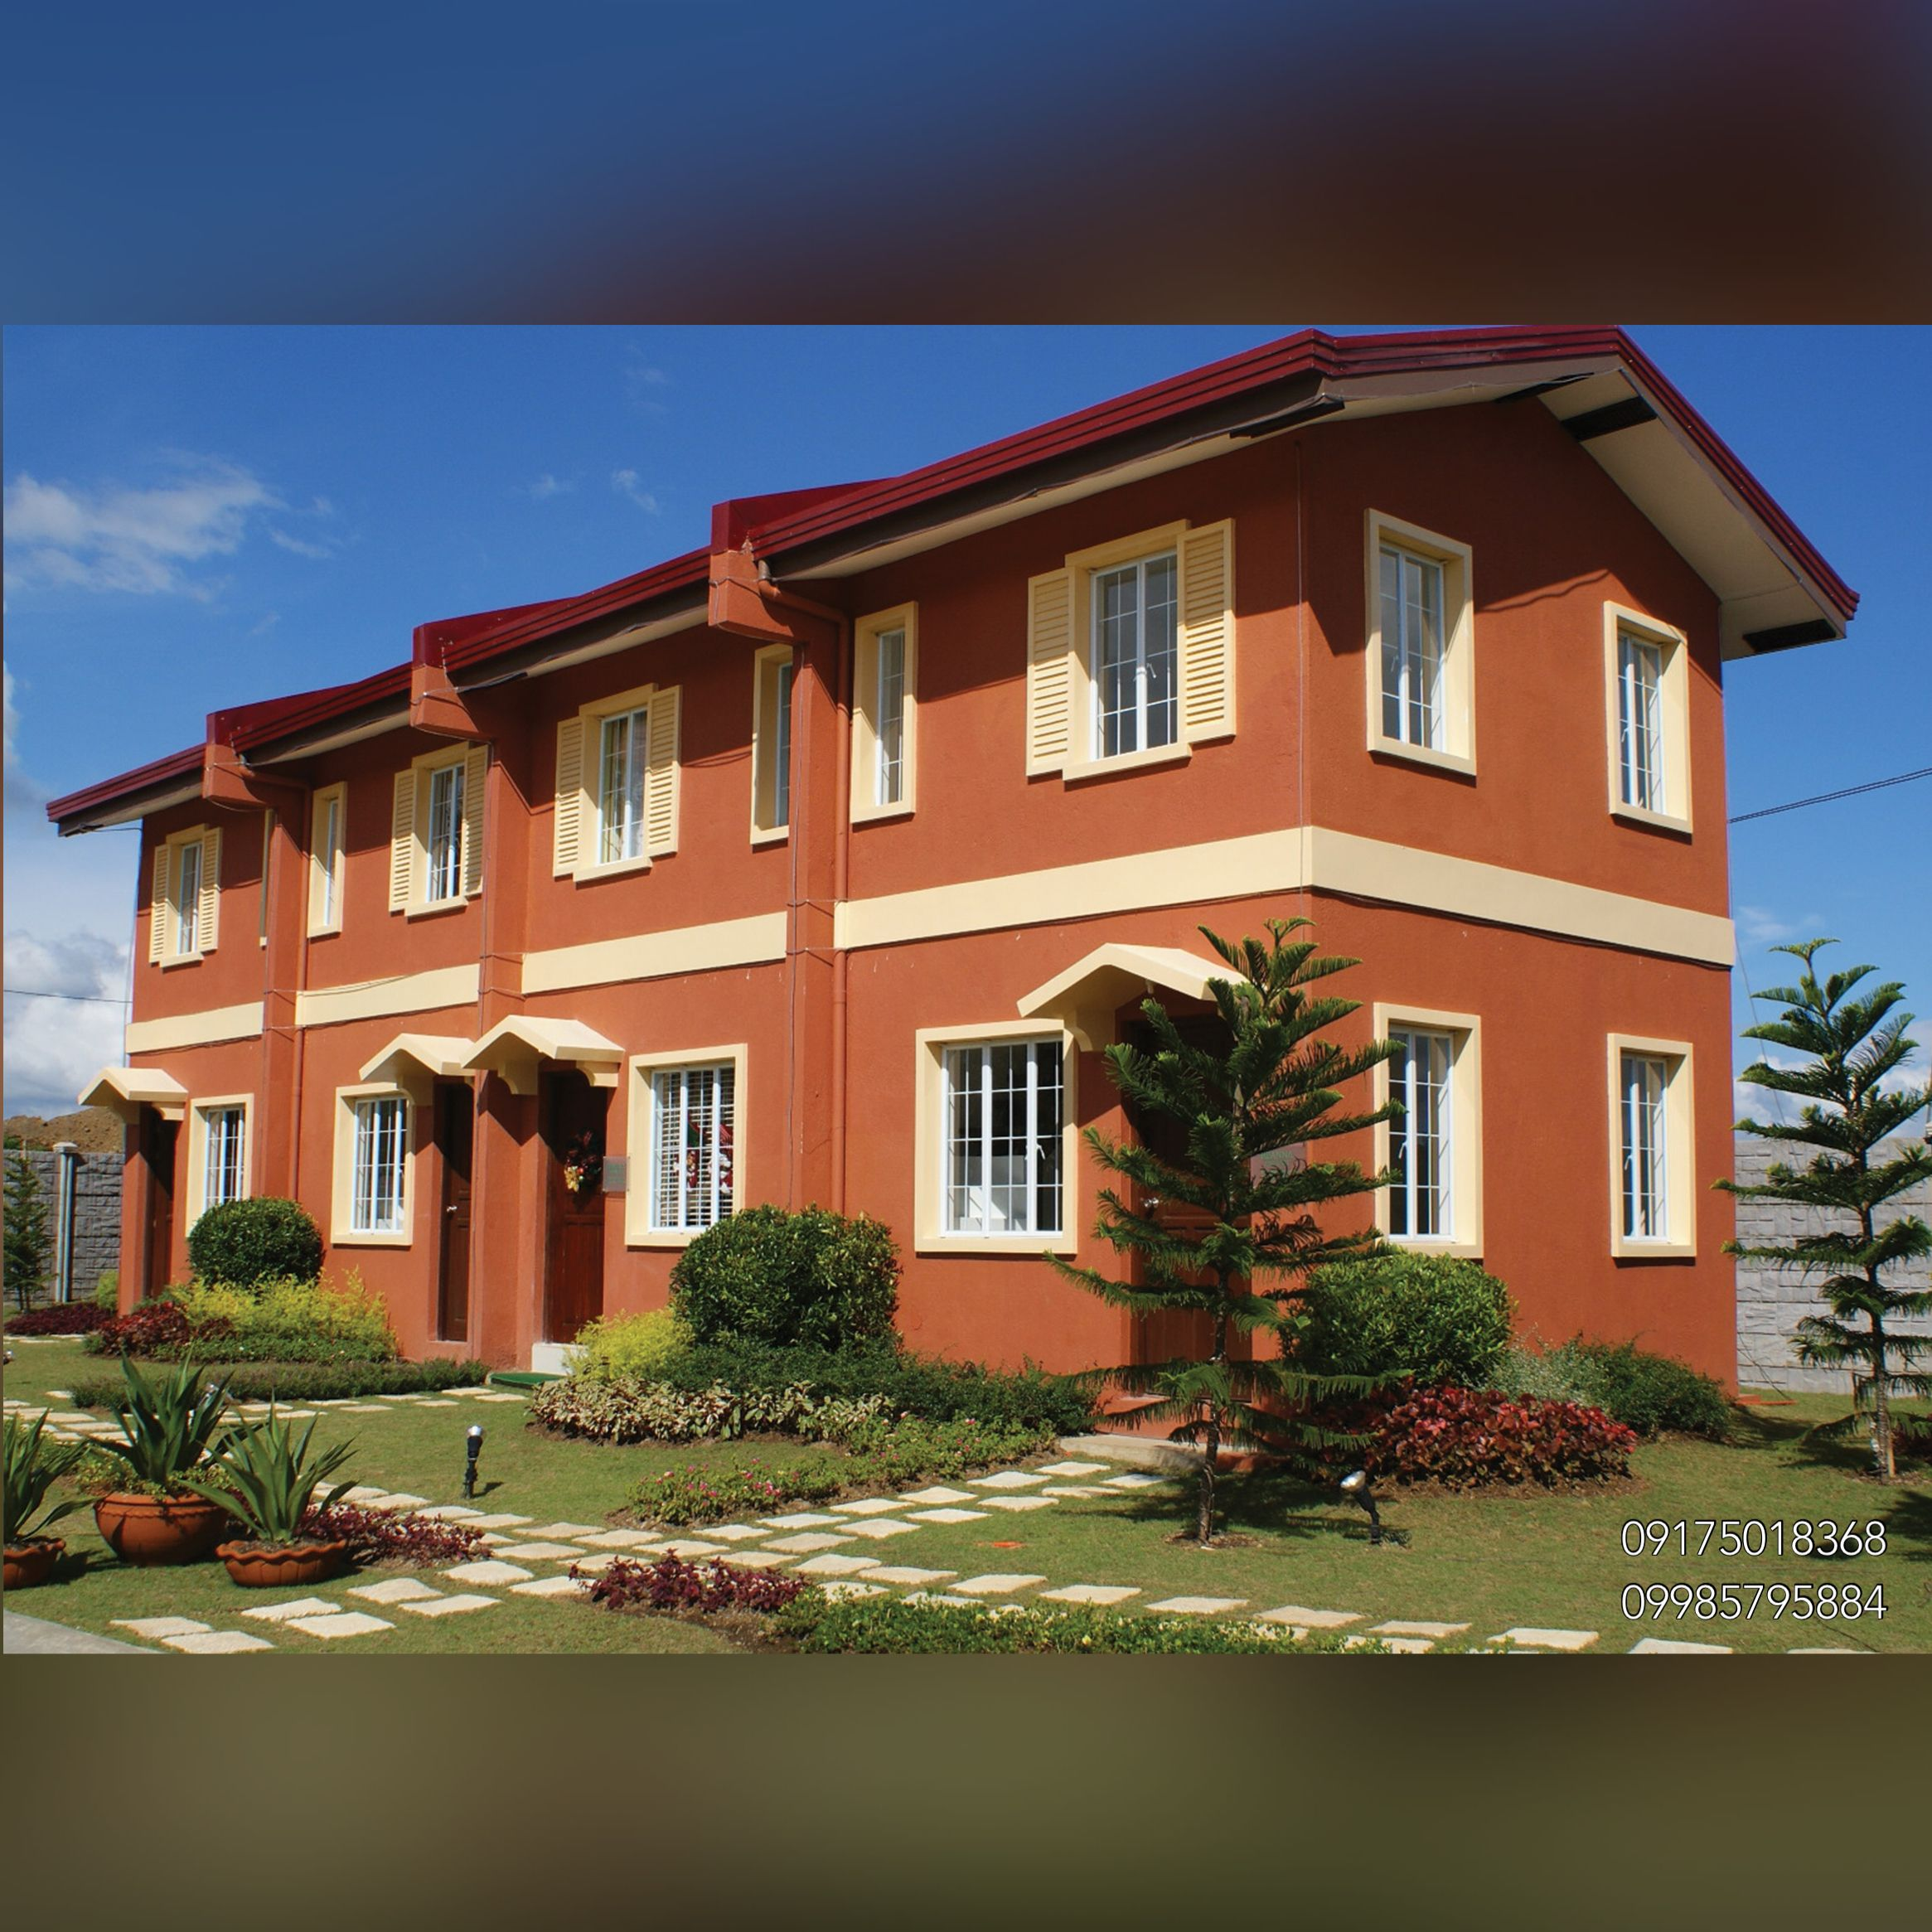 Wooden crib for sale cavite - Camella Carcar House And Lot For Sale In Carcar City Cebu Real Estate For Sale In Carcar City